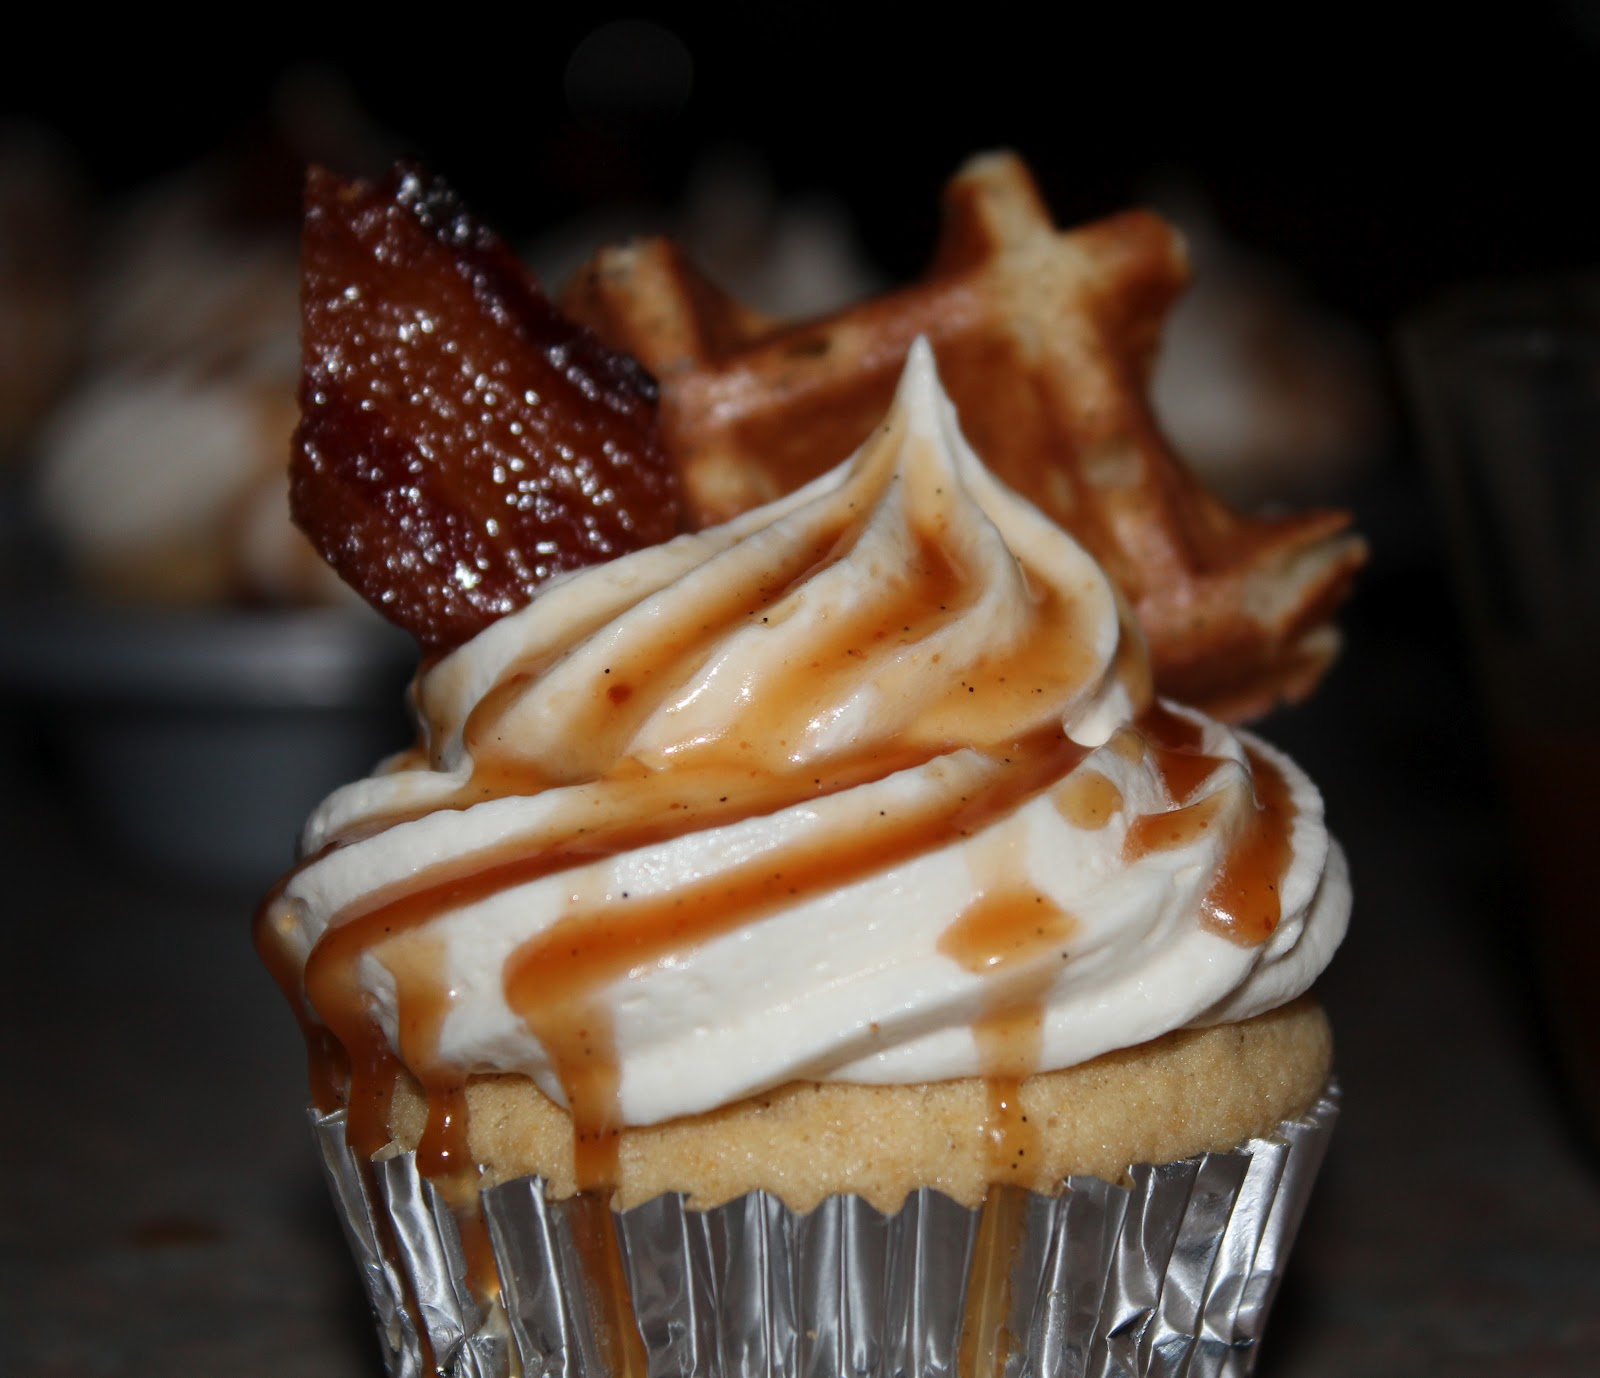 ... Maple Hazelnut Buttercream & Bourbon Caramel | High Altitude Cupcakes